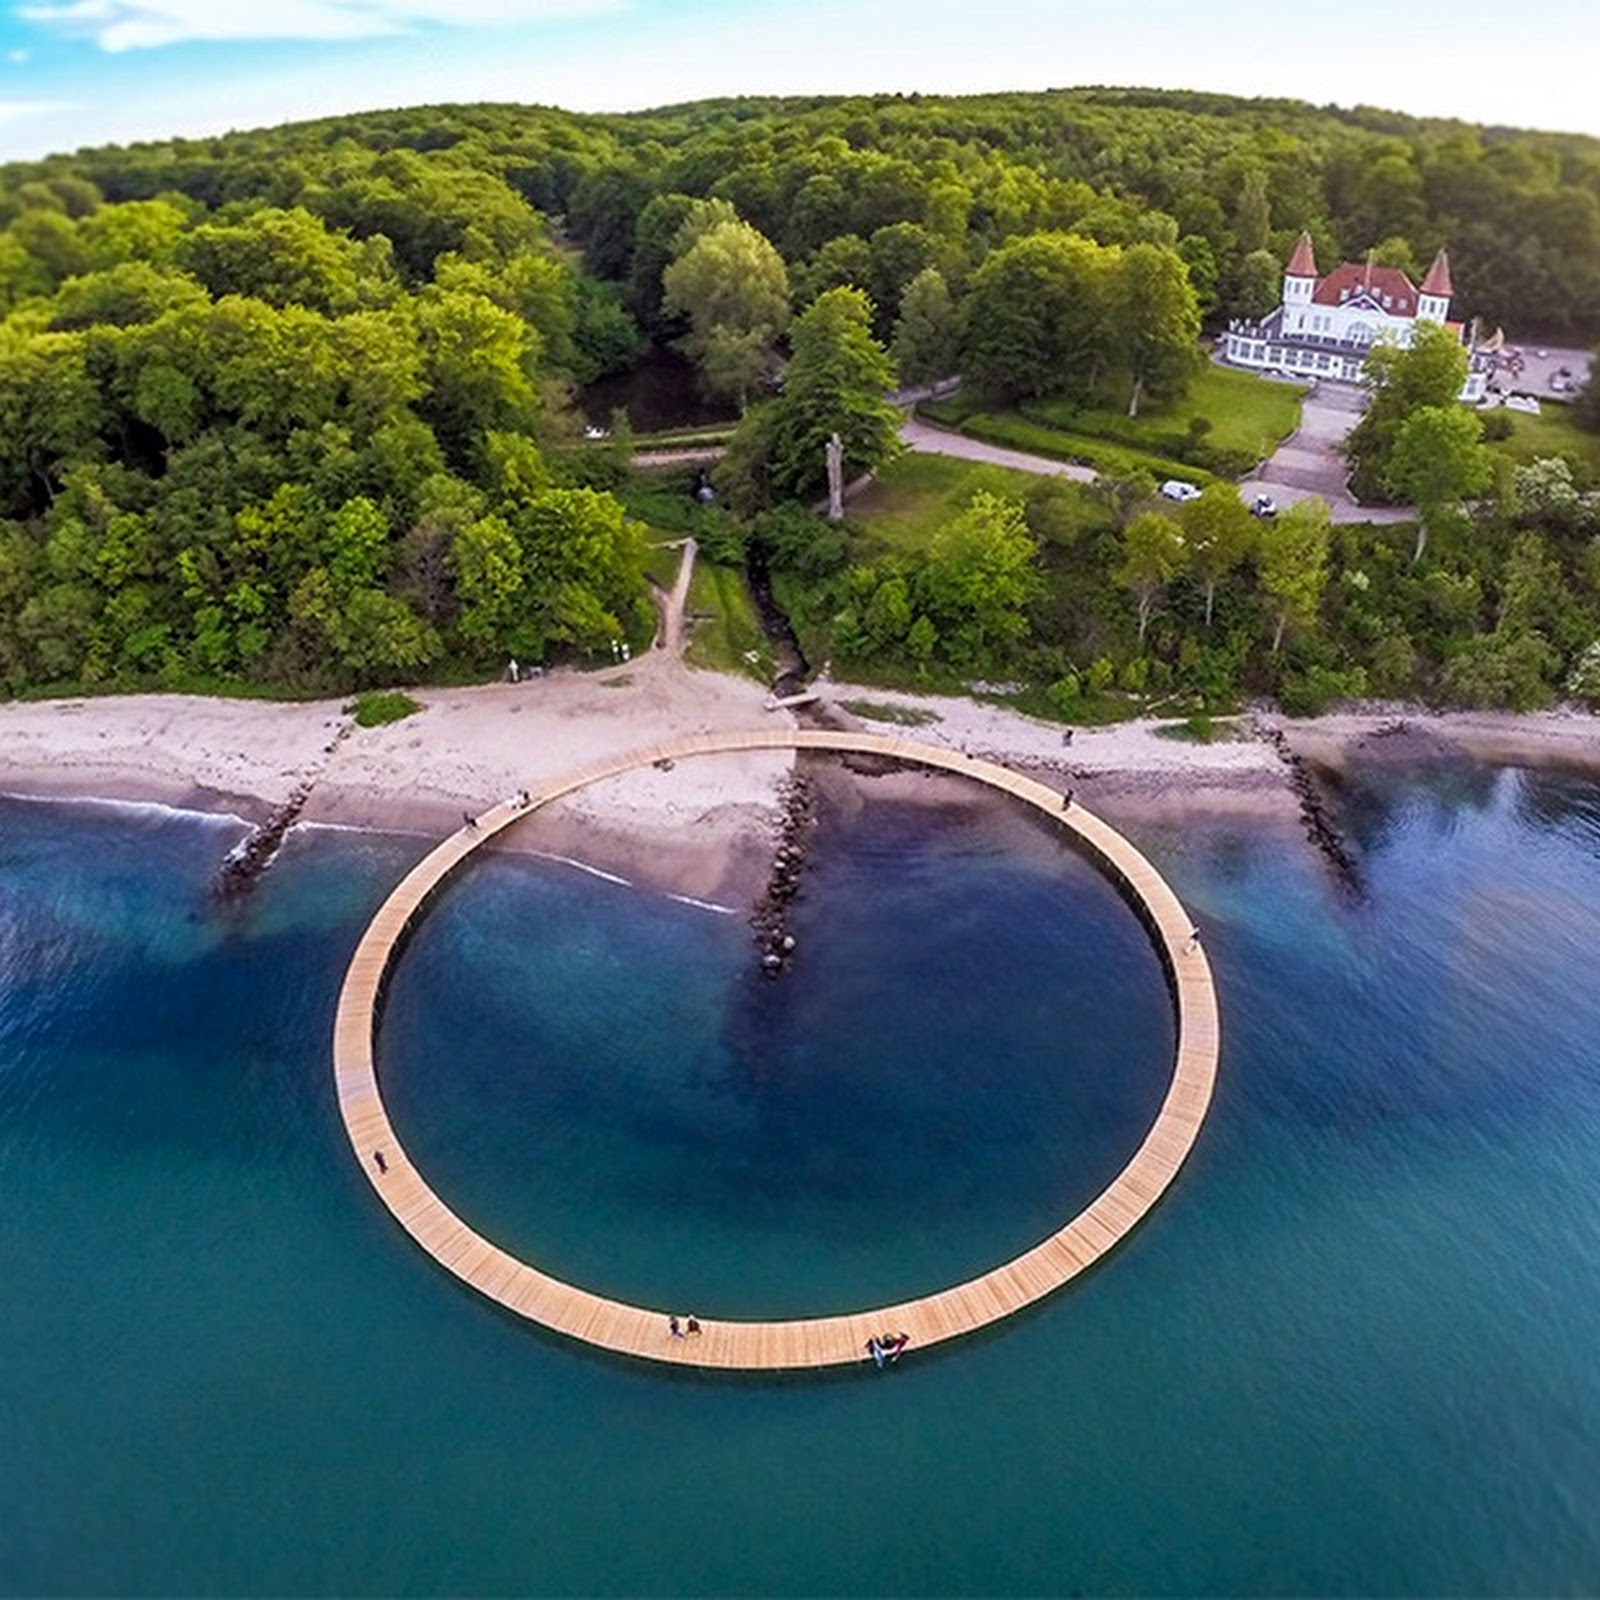 The Infinite Bridge in Aarhus, Denmark